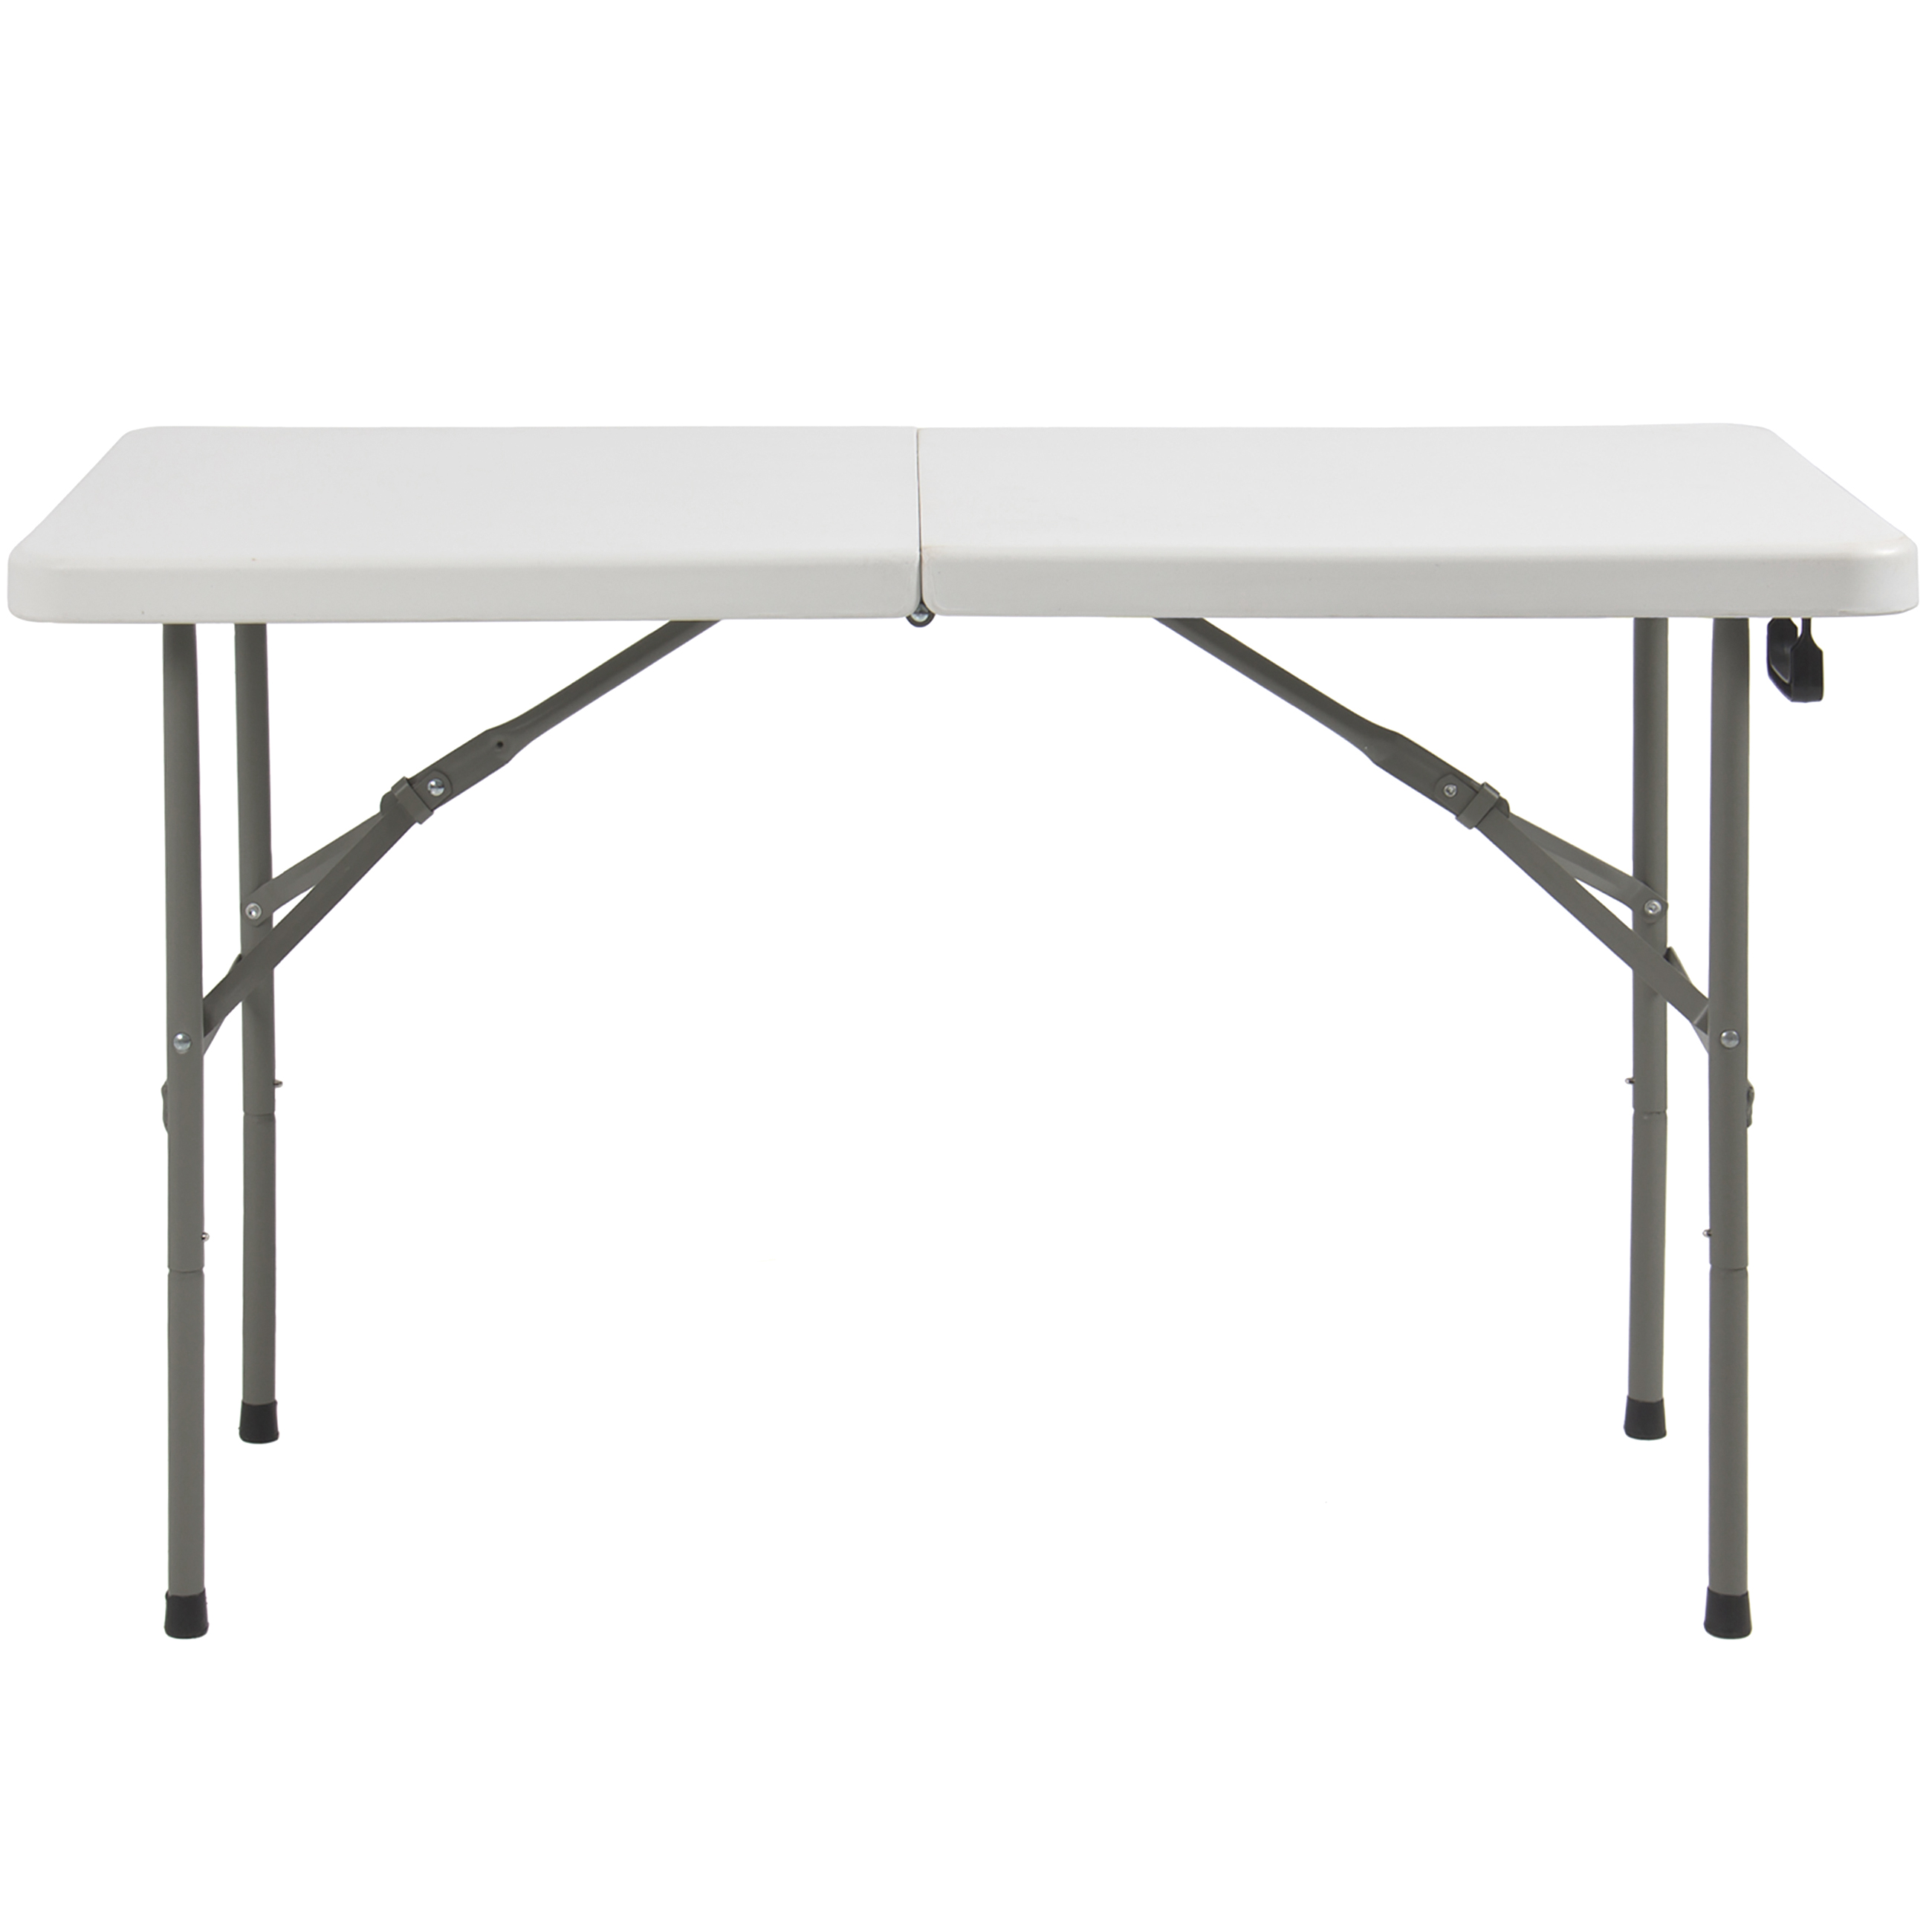 Folding Table 4 Portable Plastic Indoor Outdoor Picnic  : SKY1593LRG 2 from www.ebay.com size 2600 x 2600 jpeg 868kB